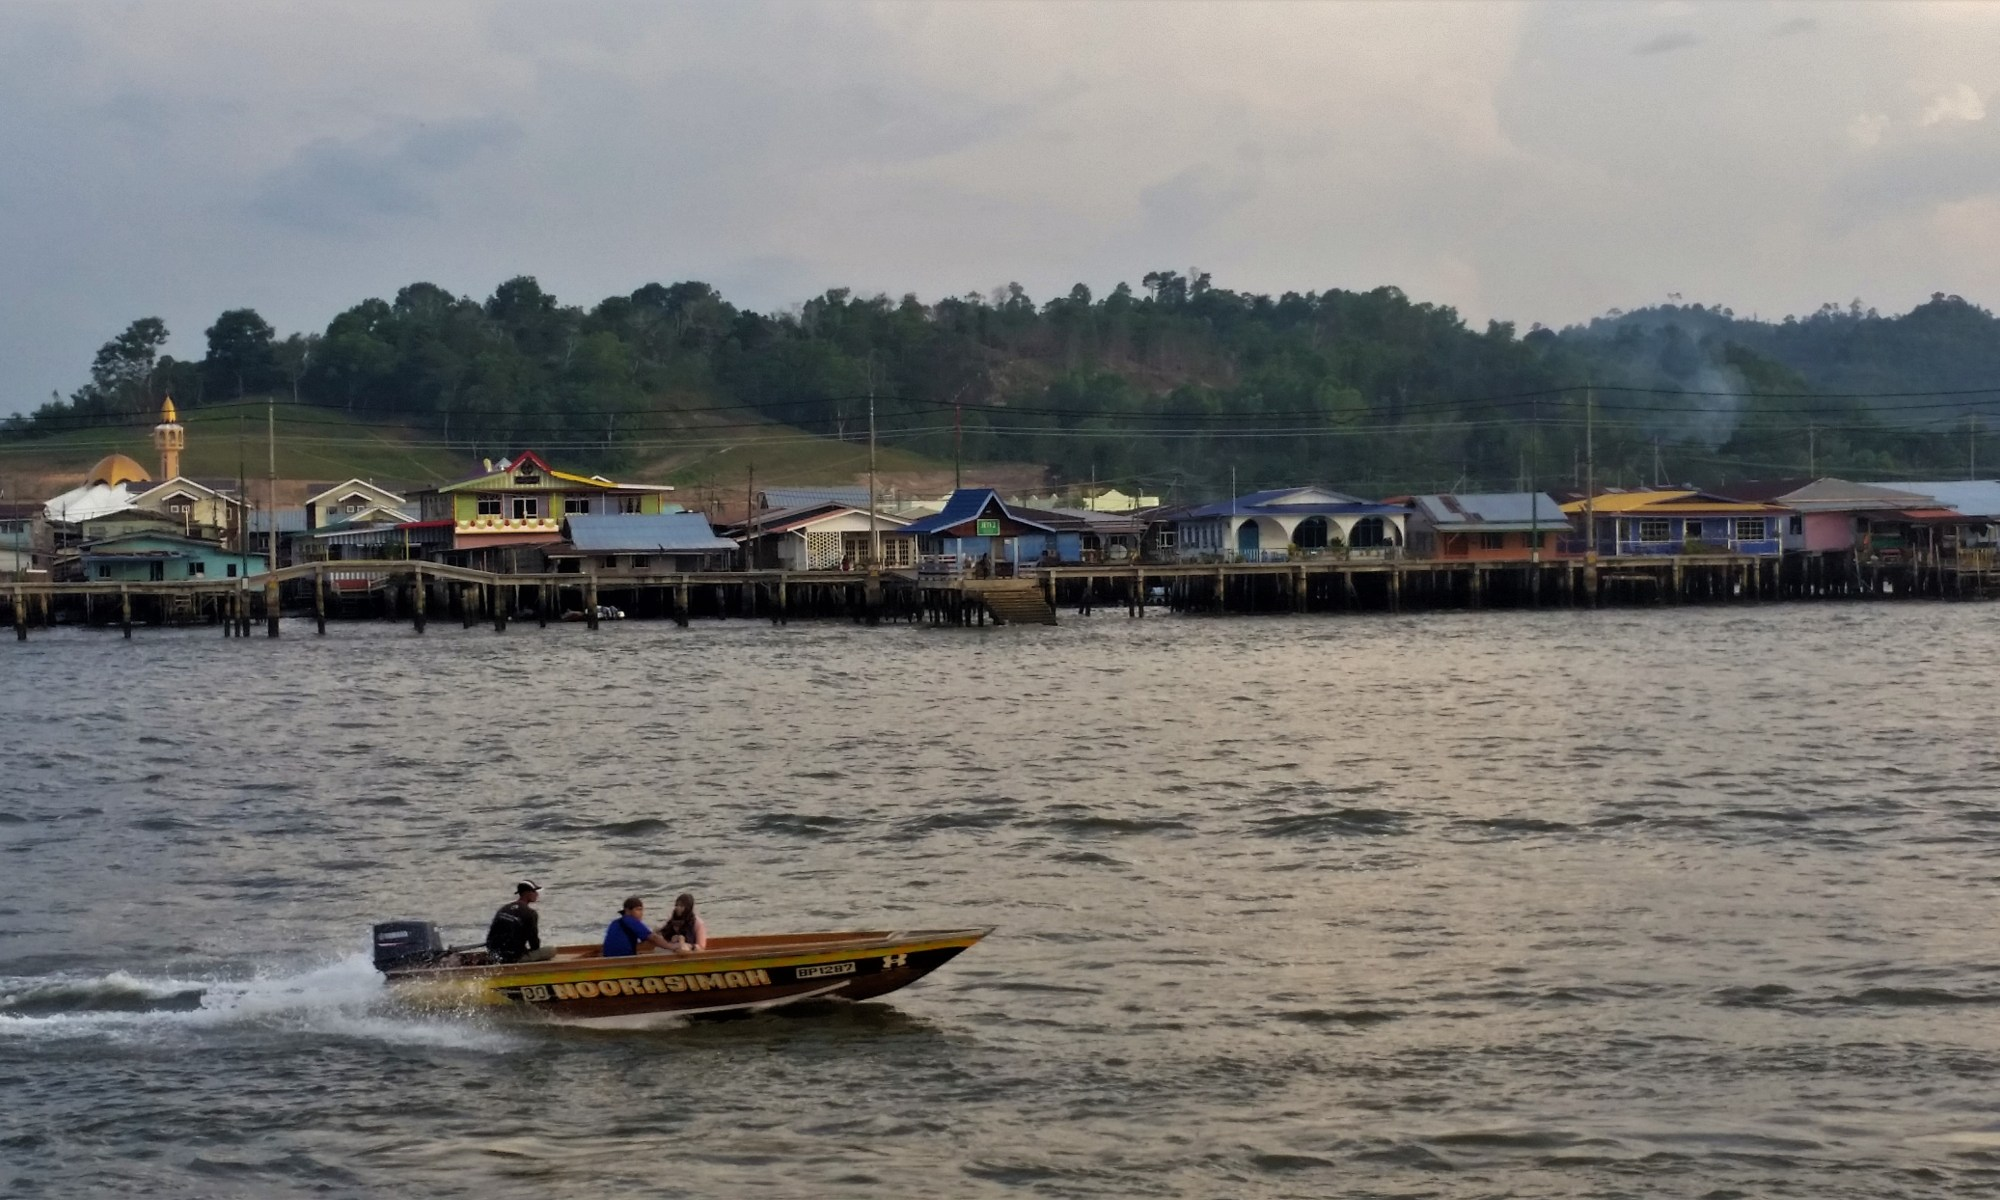 Kampong Ayer, Brunei – July 17, 2015: A motorboat passes by on the water in front of Kampong Ayer, a historic settlement area in Bandar Seri Begawan made of a cluster of traditional stilt villages built on the Brunei River.